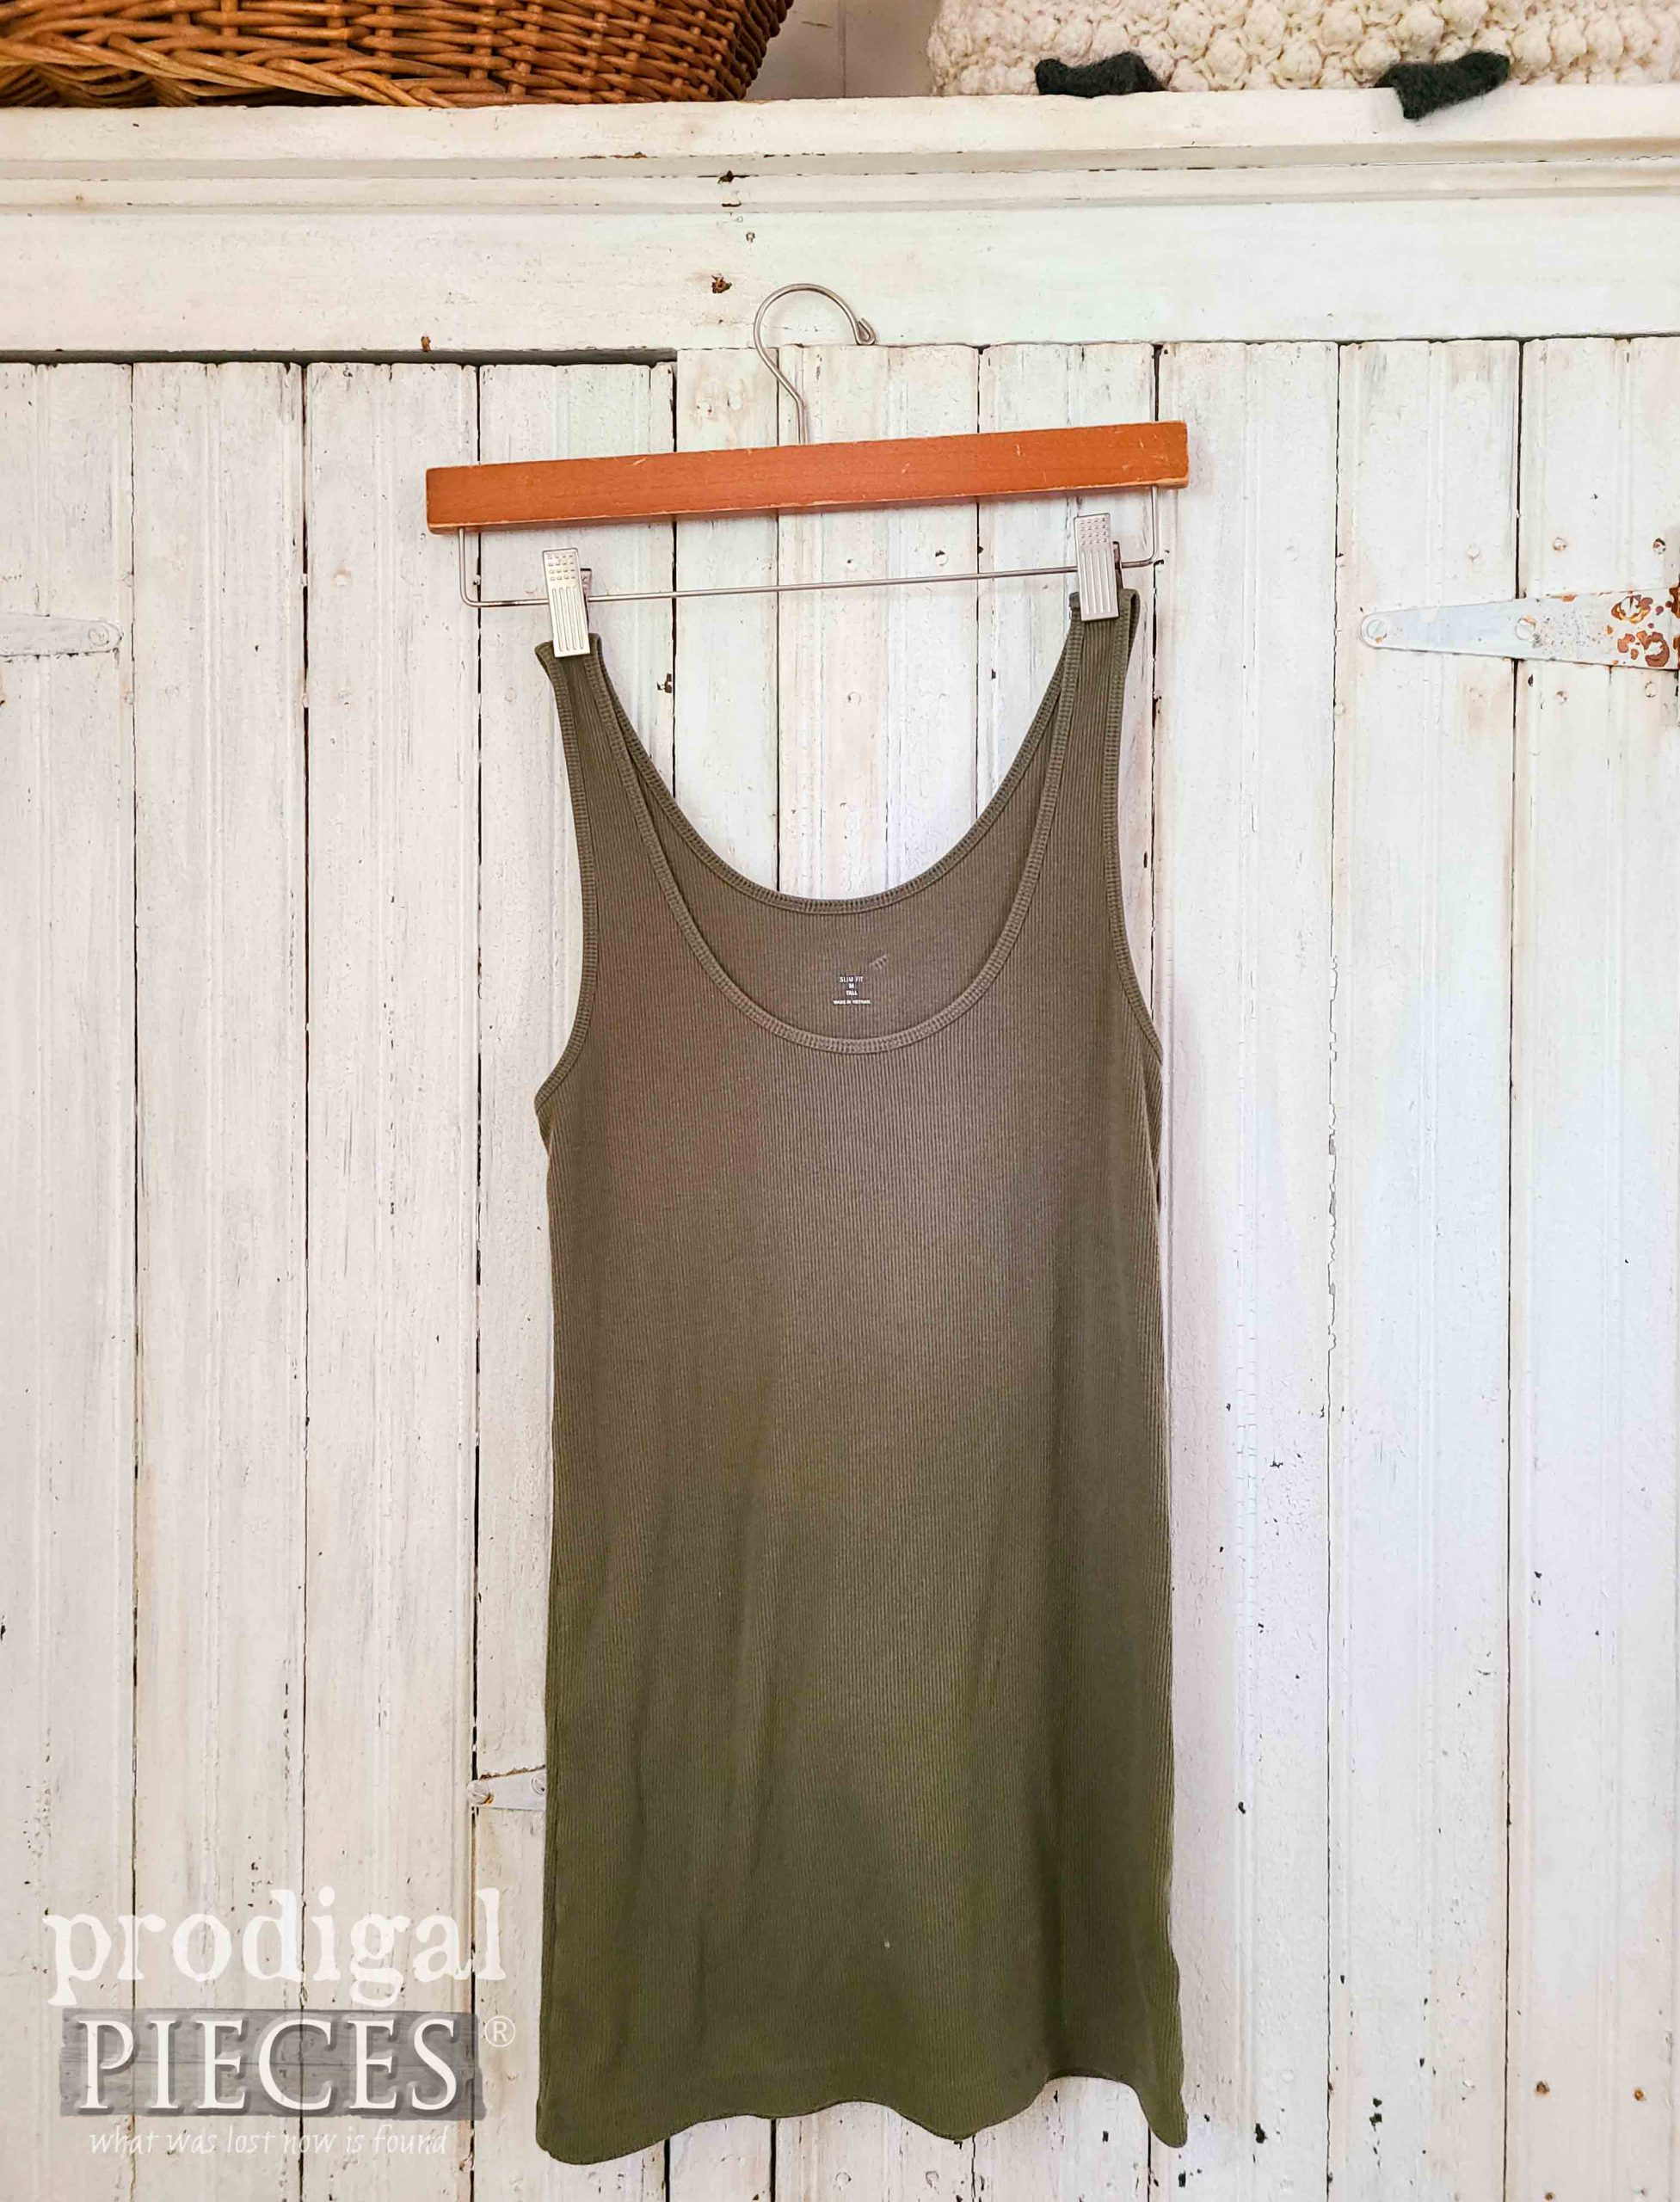 Tank Top Before Refashion into Compact Bag by Larissa of Prodigal Pieces   prodigalpieces.com